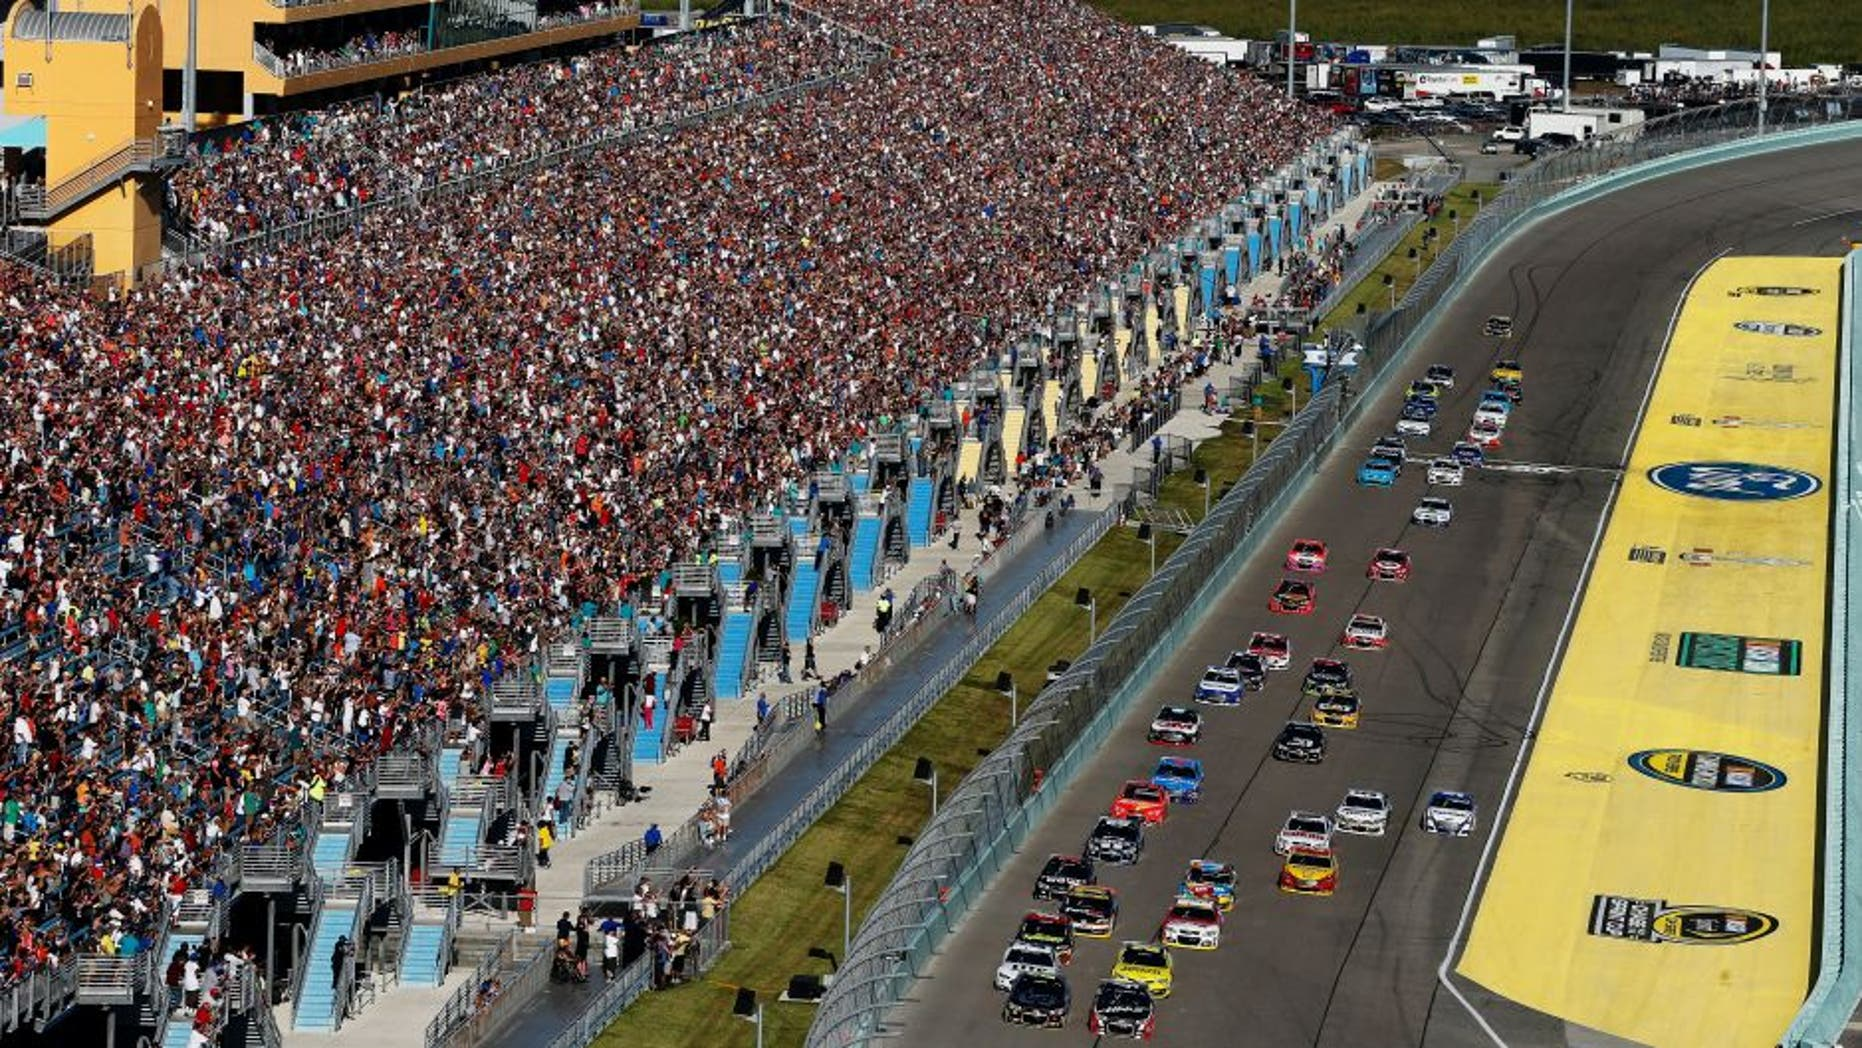 HOMESTEAD, FL - NOVEMBER 16: Jeff Gordon, driver of the #24 Drive To End Hunger Chevrolet, and Kurt Busch, driver of the #41 Haas Automation Chevrolet, lead the field on the first lap of the NASCAR Sprint Cup Series Ford EcoBoost 400 at Homestead-Miami Speedway on November 16, 2014 in Homestead, Florida. (Photo by Brian Lawdermilk/Getty Images)